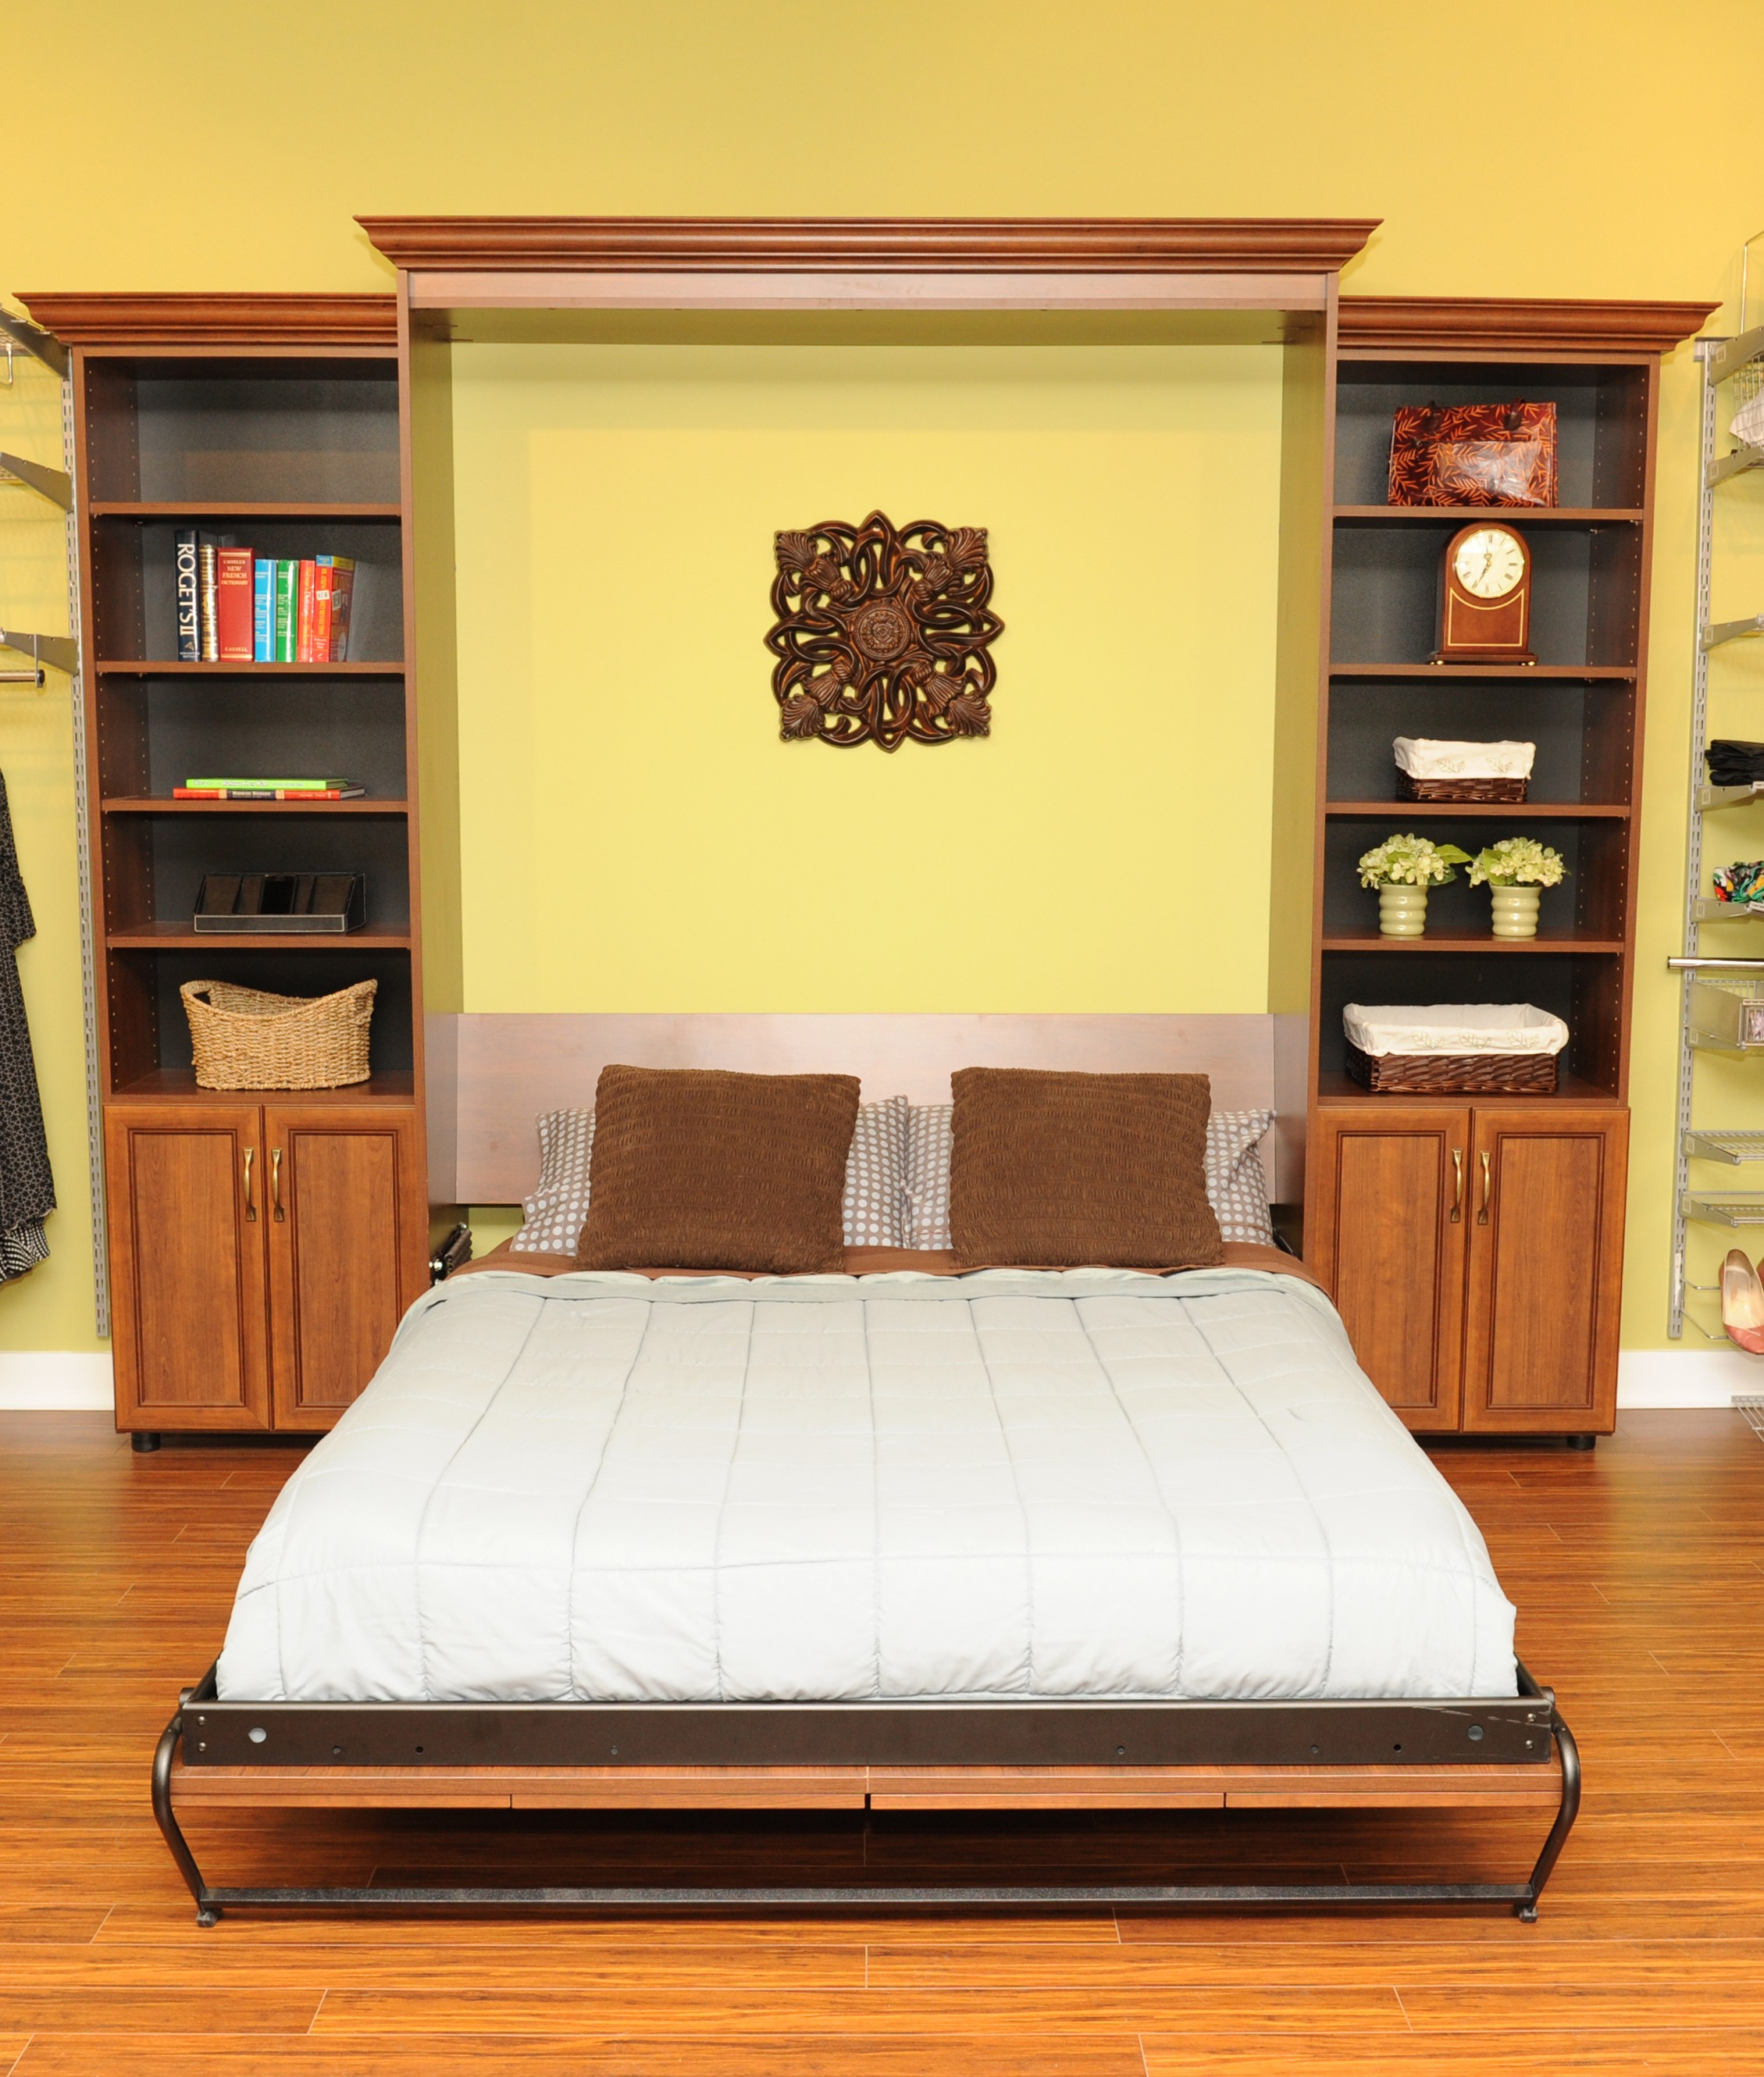 Murphy Beds 40 Off At Space Age Shelving Until Oct 31